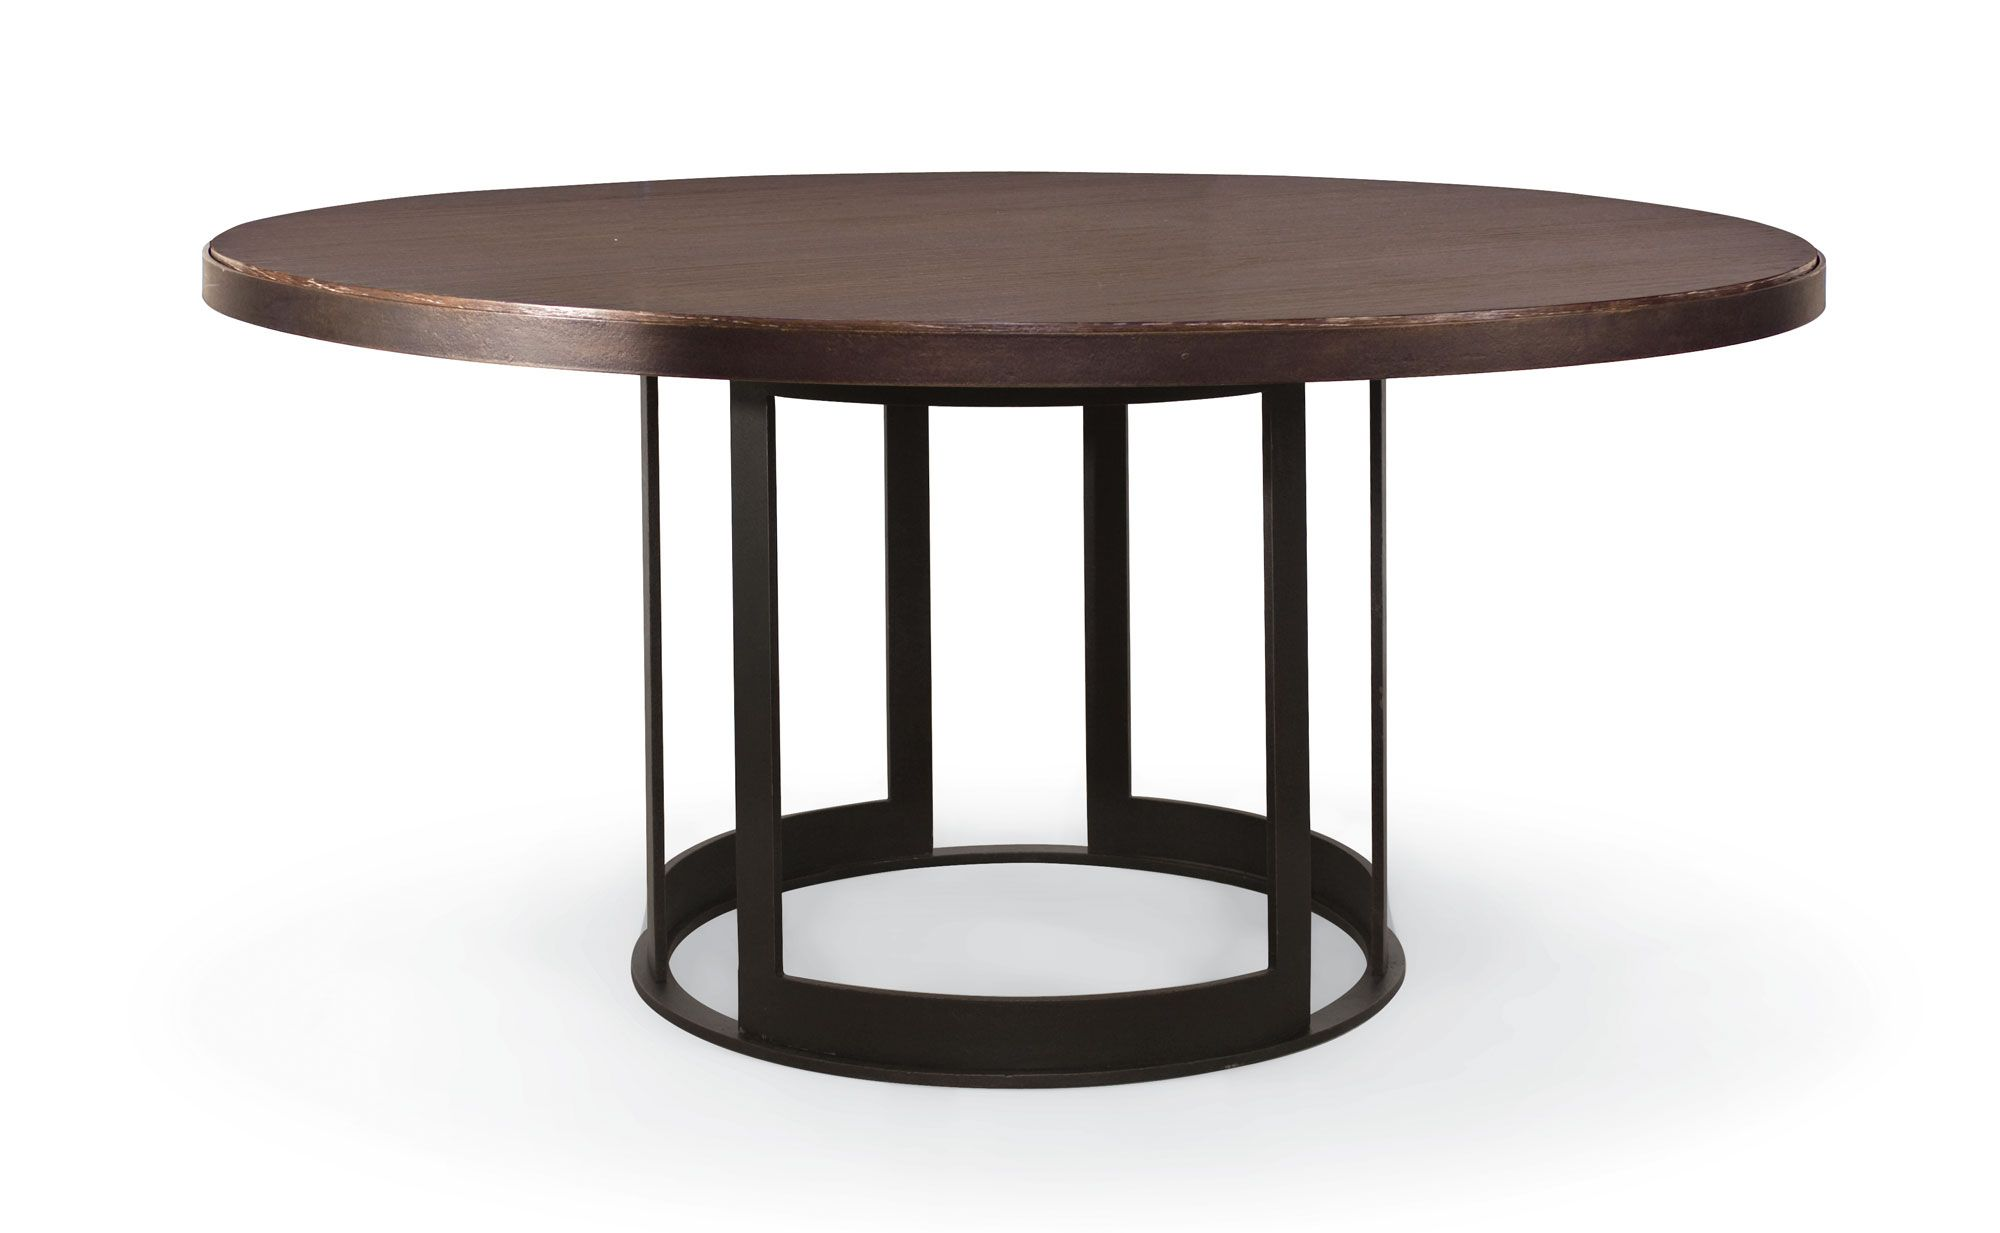 Bernhardt Elements Round Dining Table 64 Inch 335 778